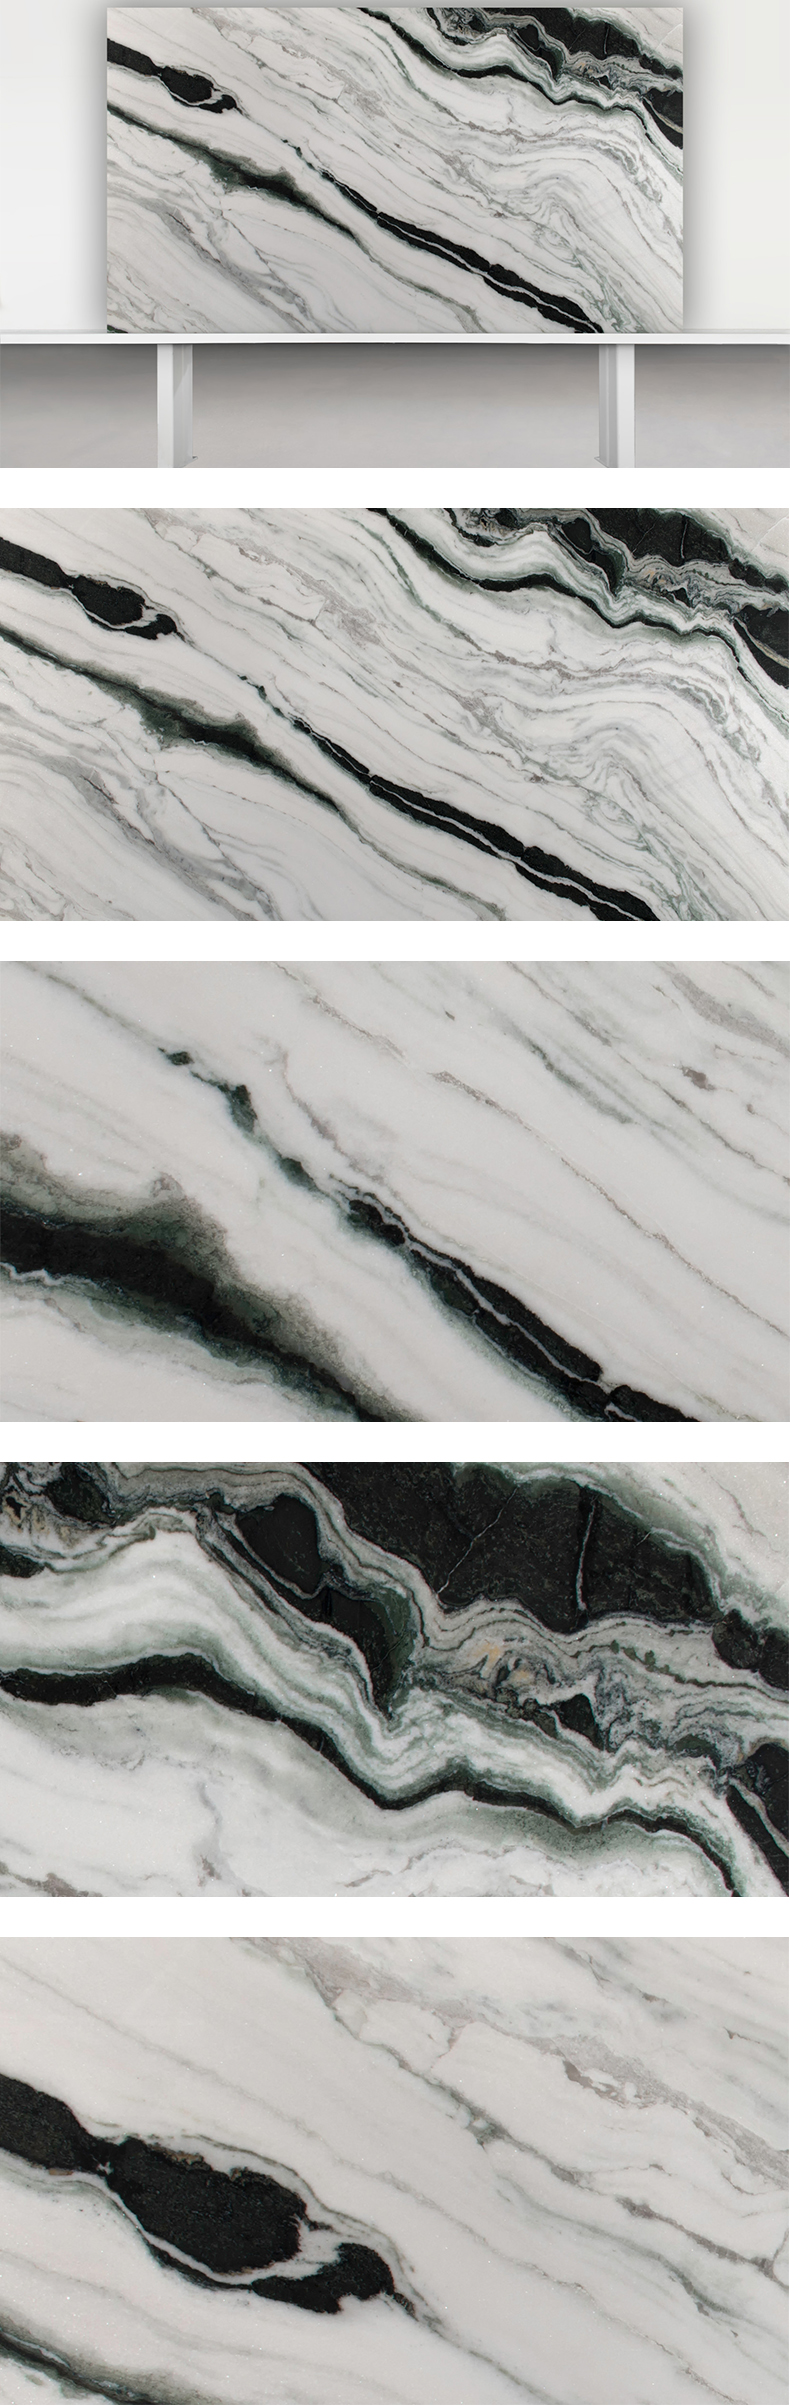 Panda White Marble for Flooring tile and Wall tile